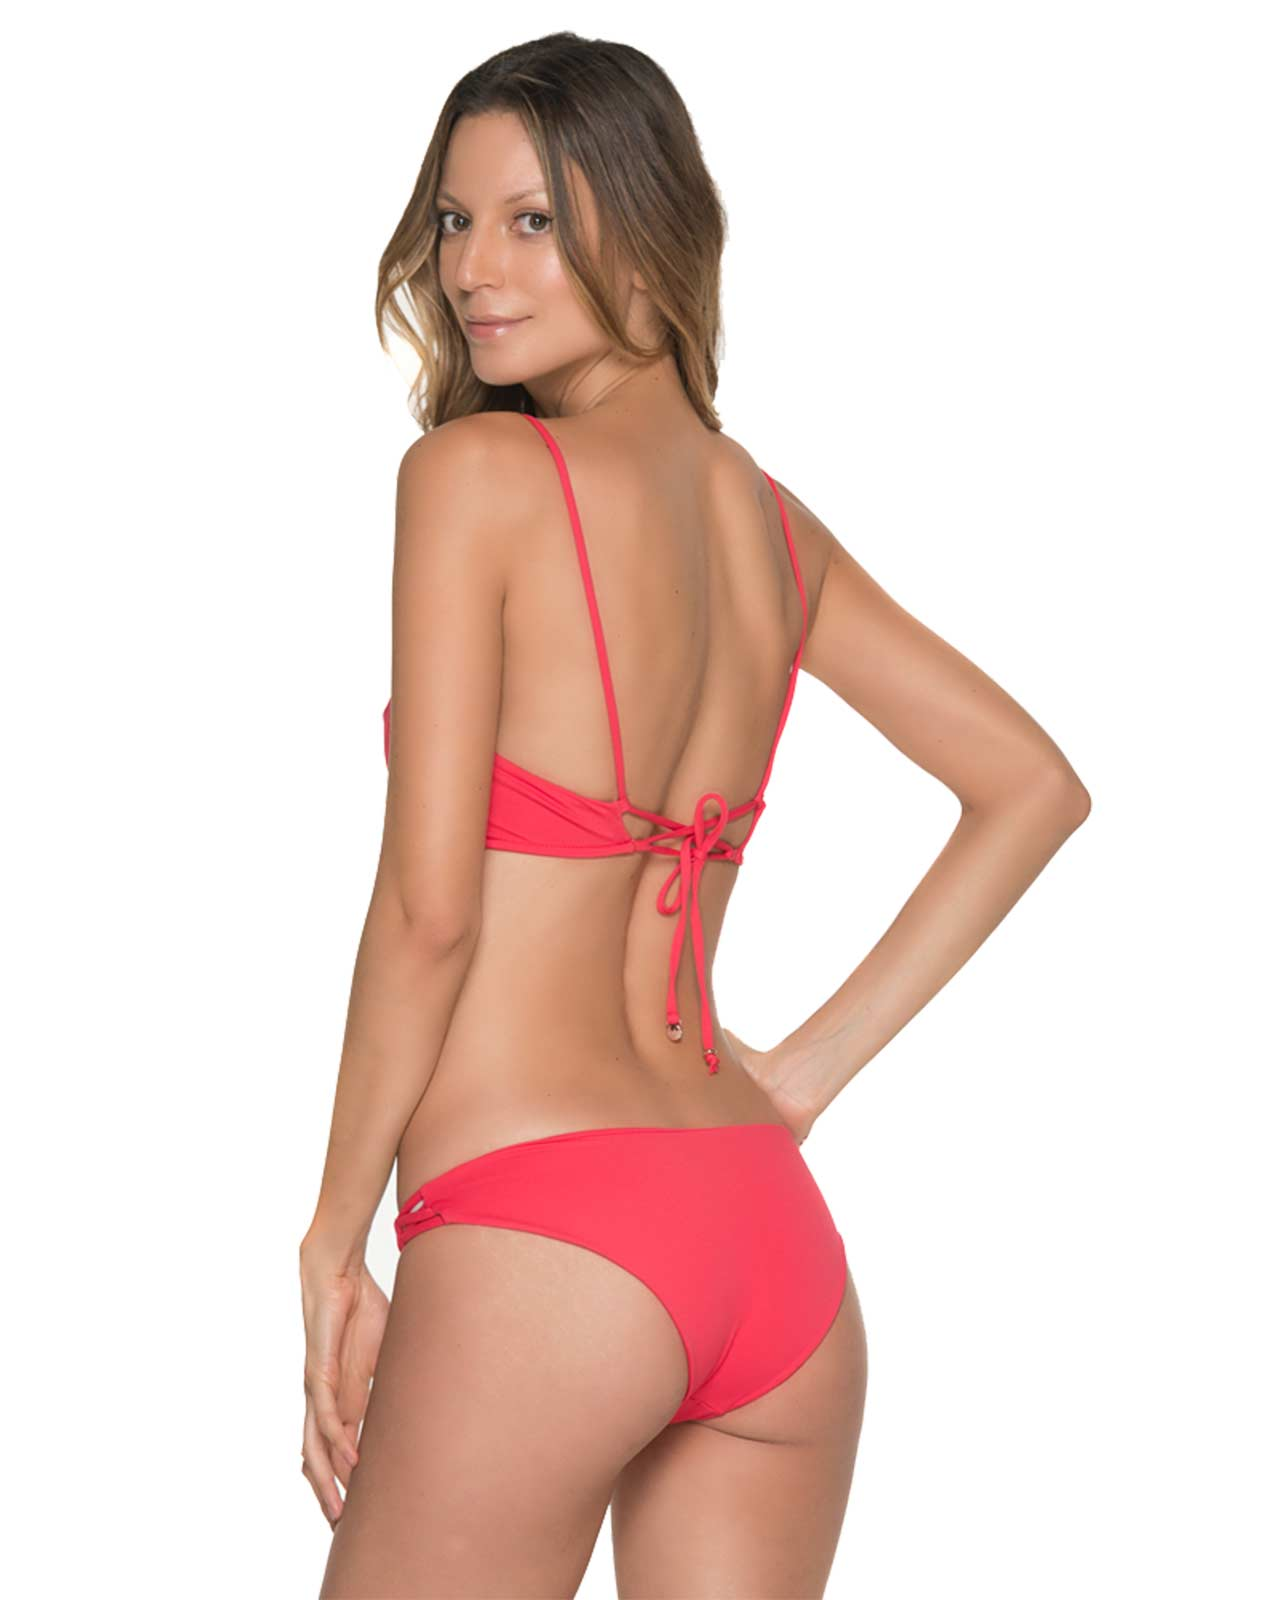 CHIEF FISHBONE CHERRY BRALETTE STRING SIDE BIKINI